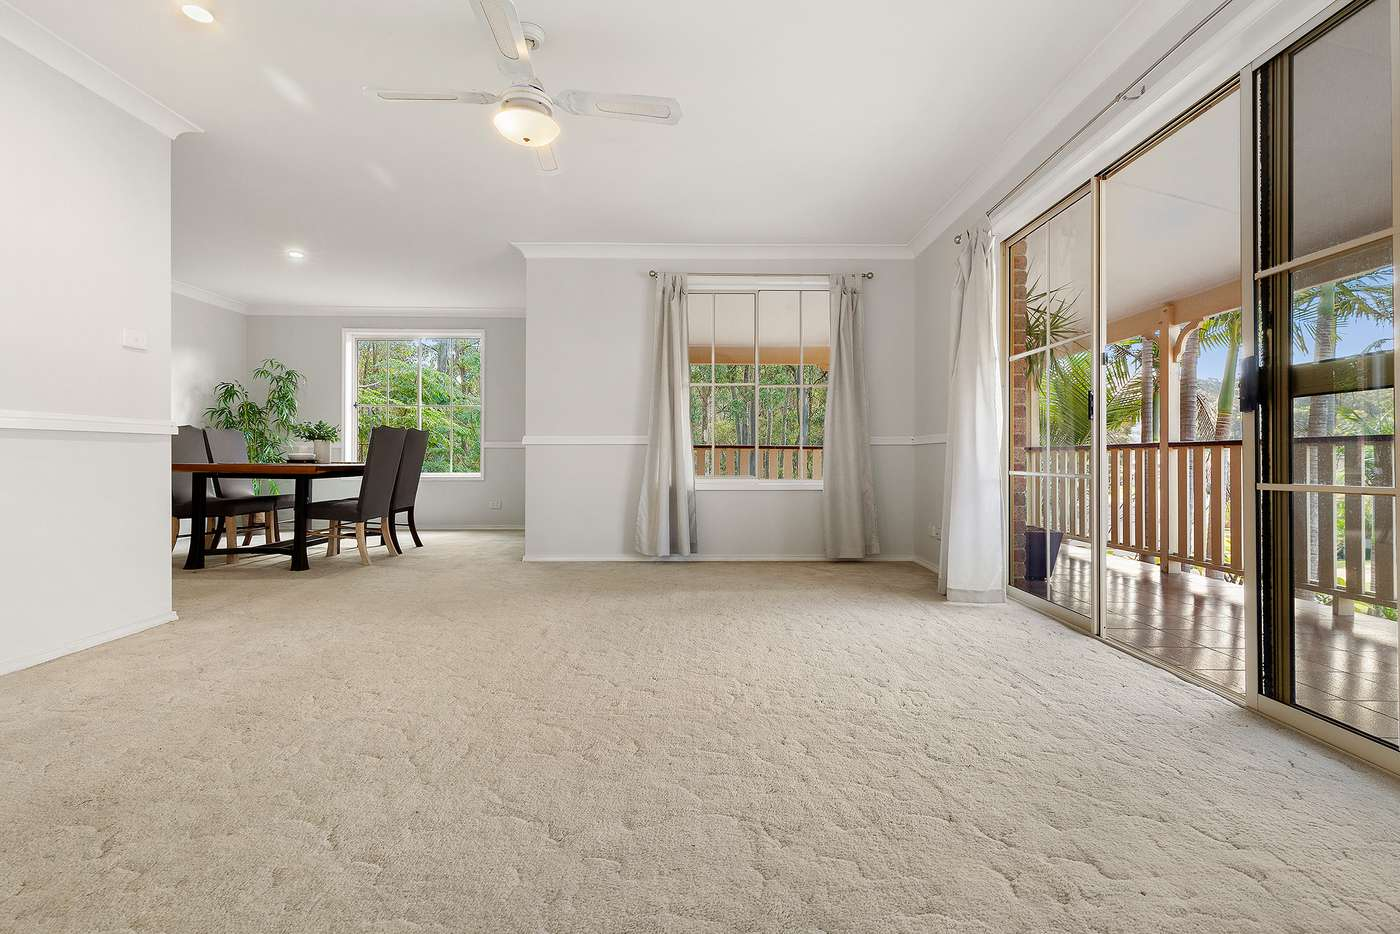 Fifth view of Homely house listing, 45 Spinnaker Ridge Way, Belmont NSW 2280